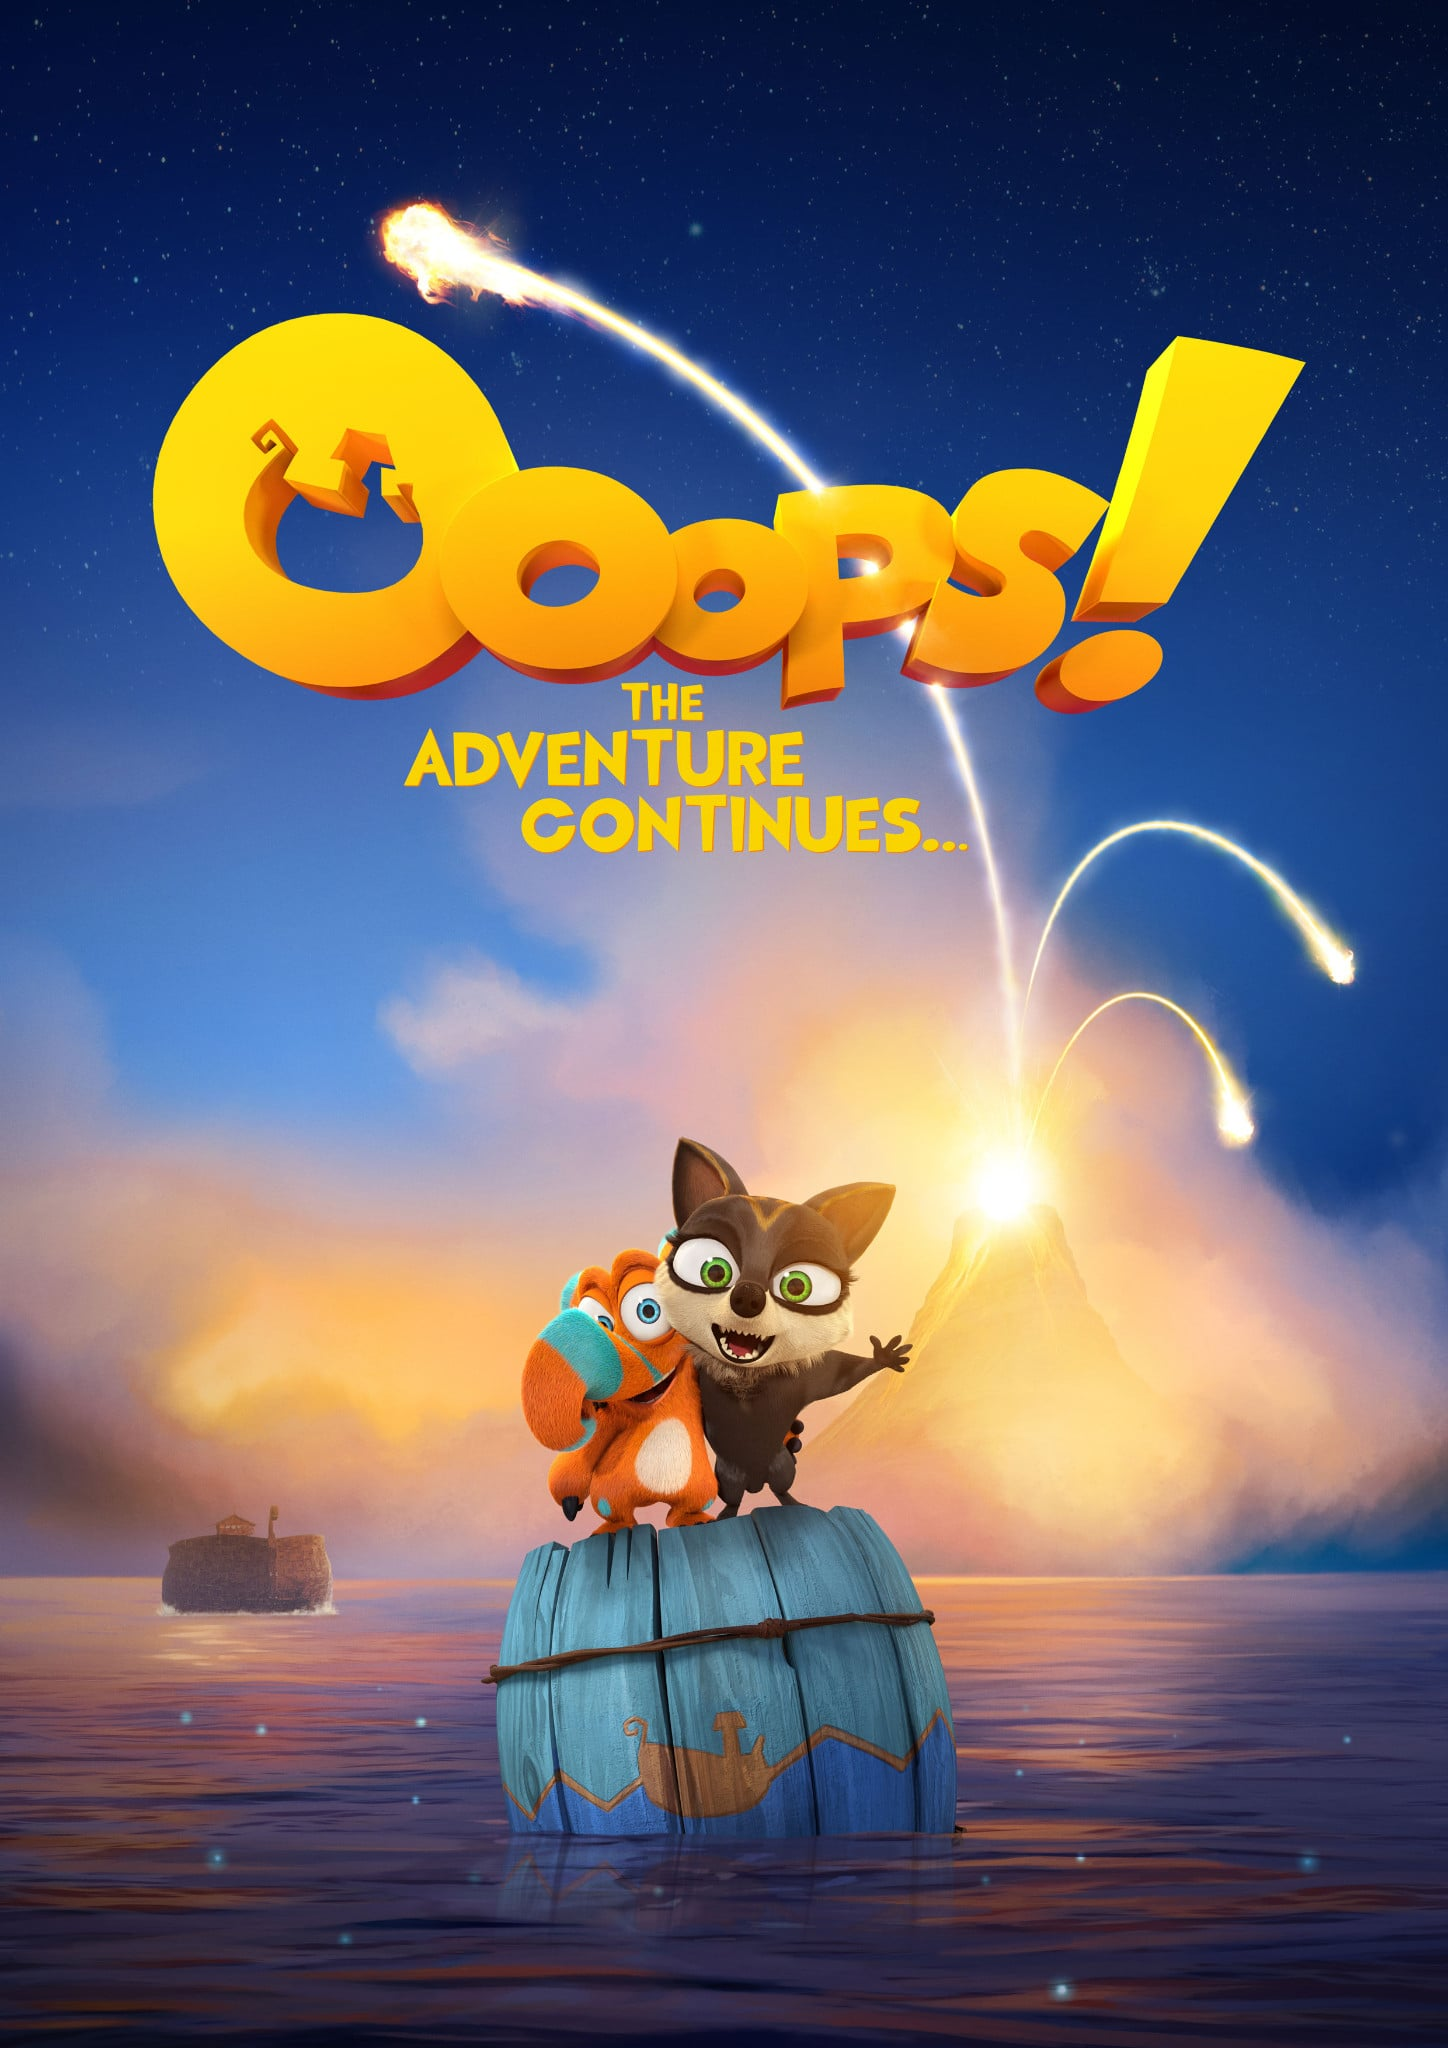 Regarder Ooops! The Adventure Continues… en streaming gratuit